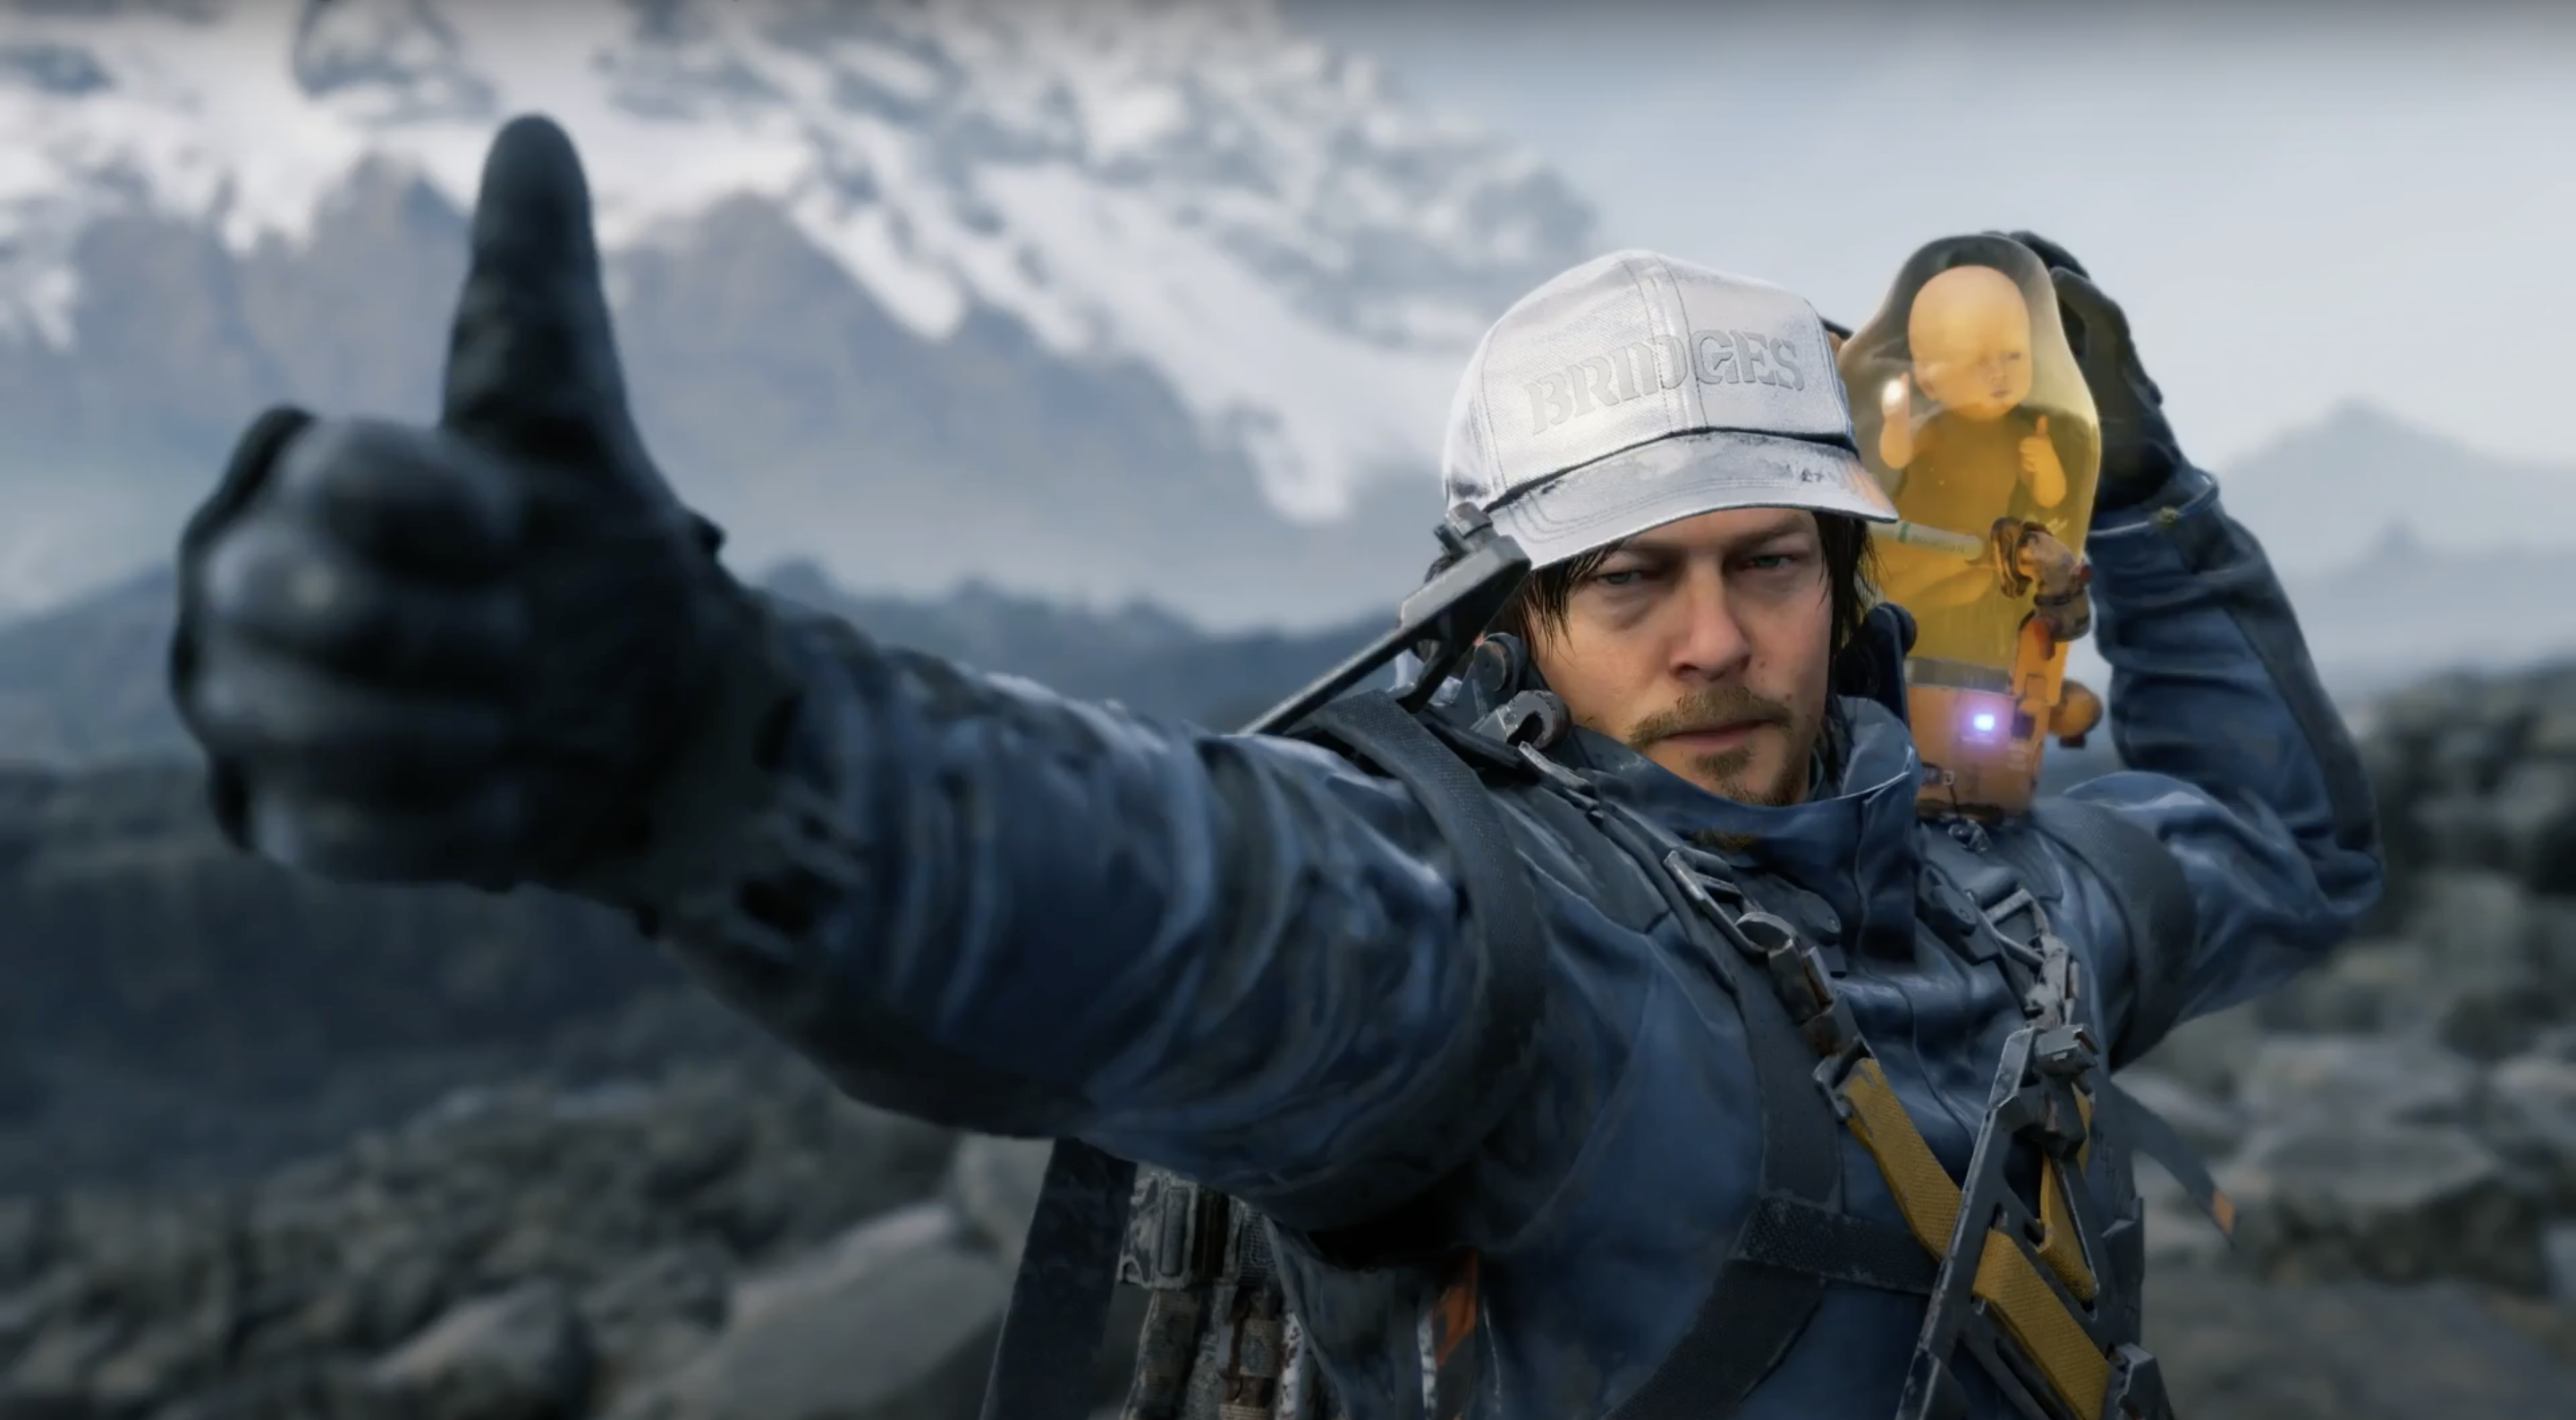 Quiet co-operation with other players makes Death Stranding special